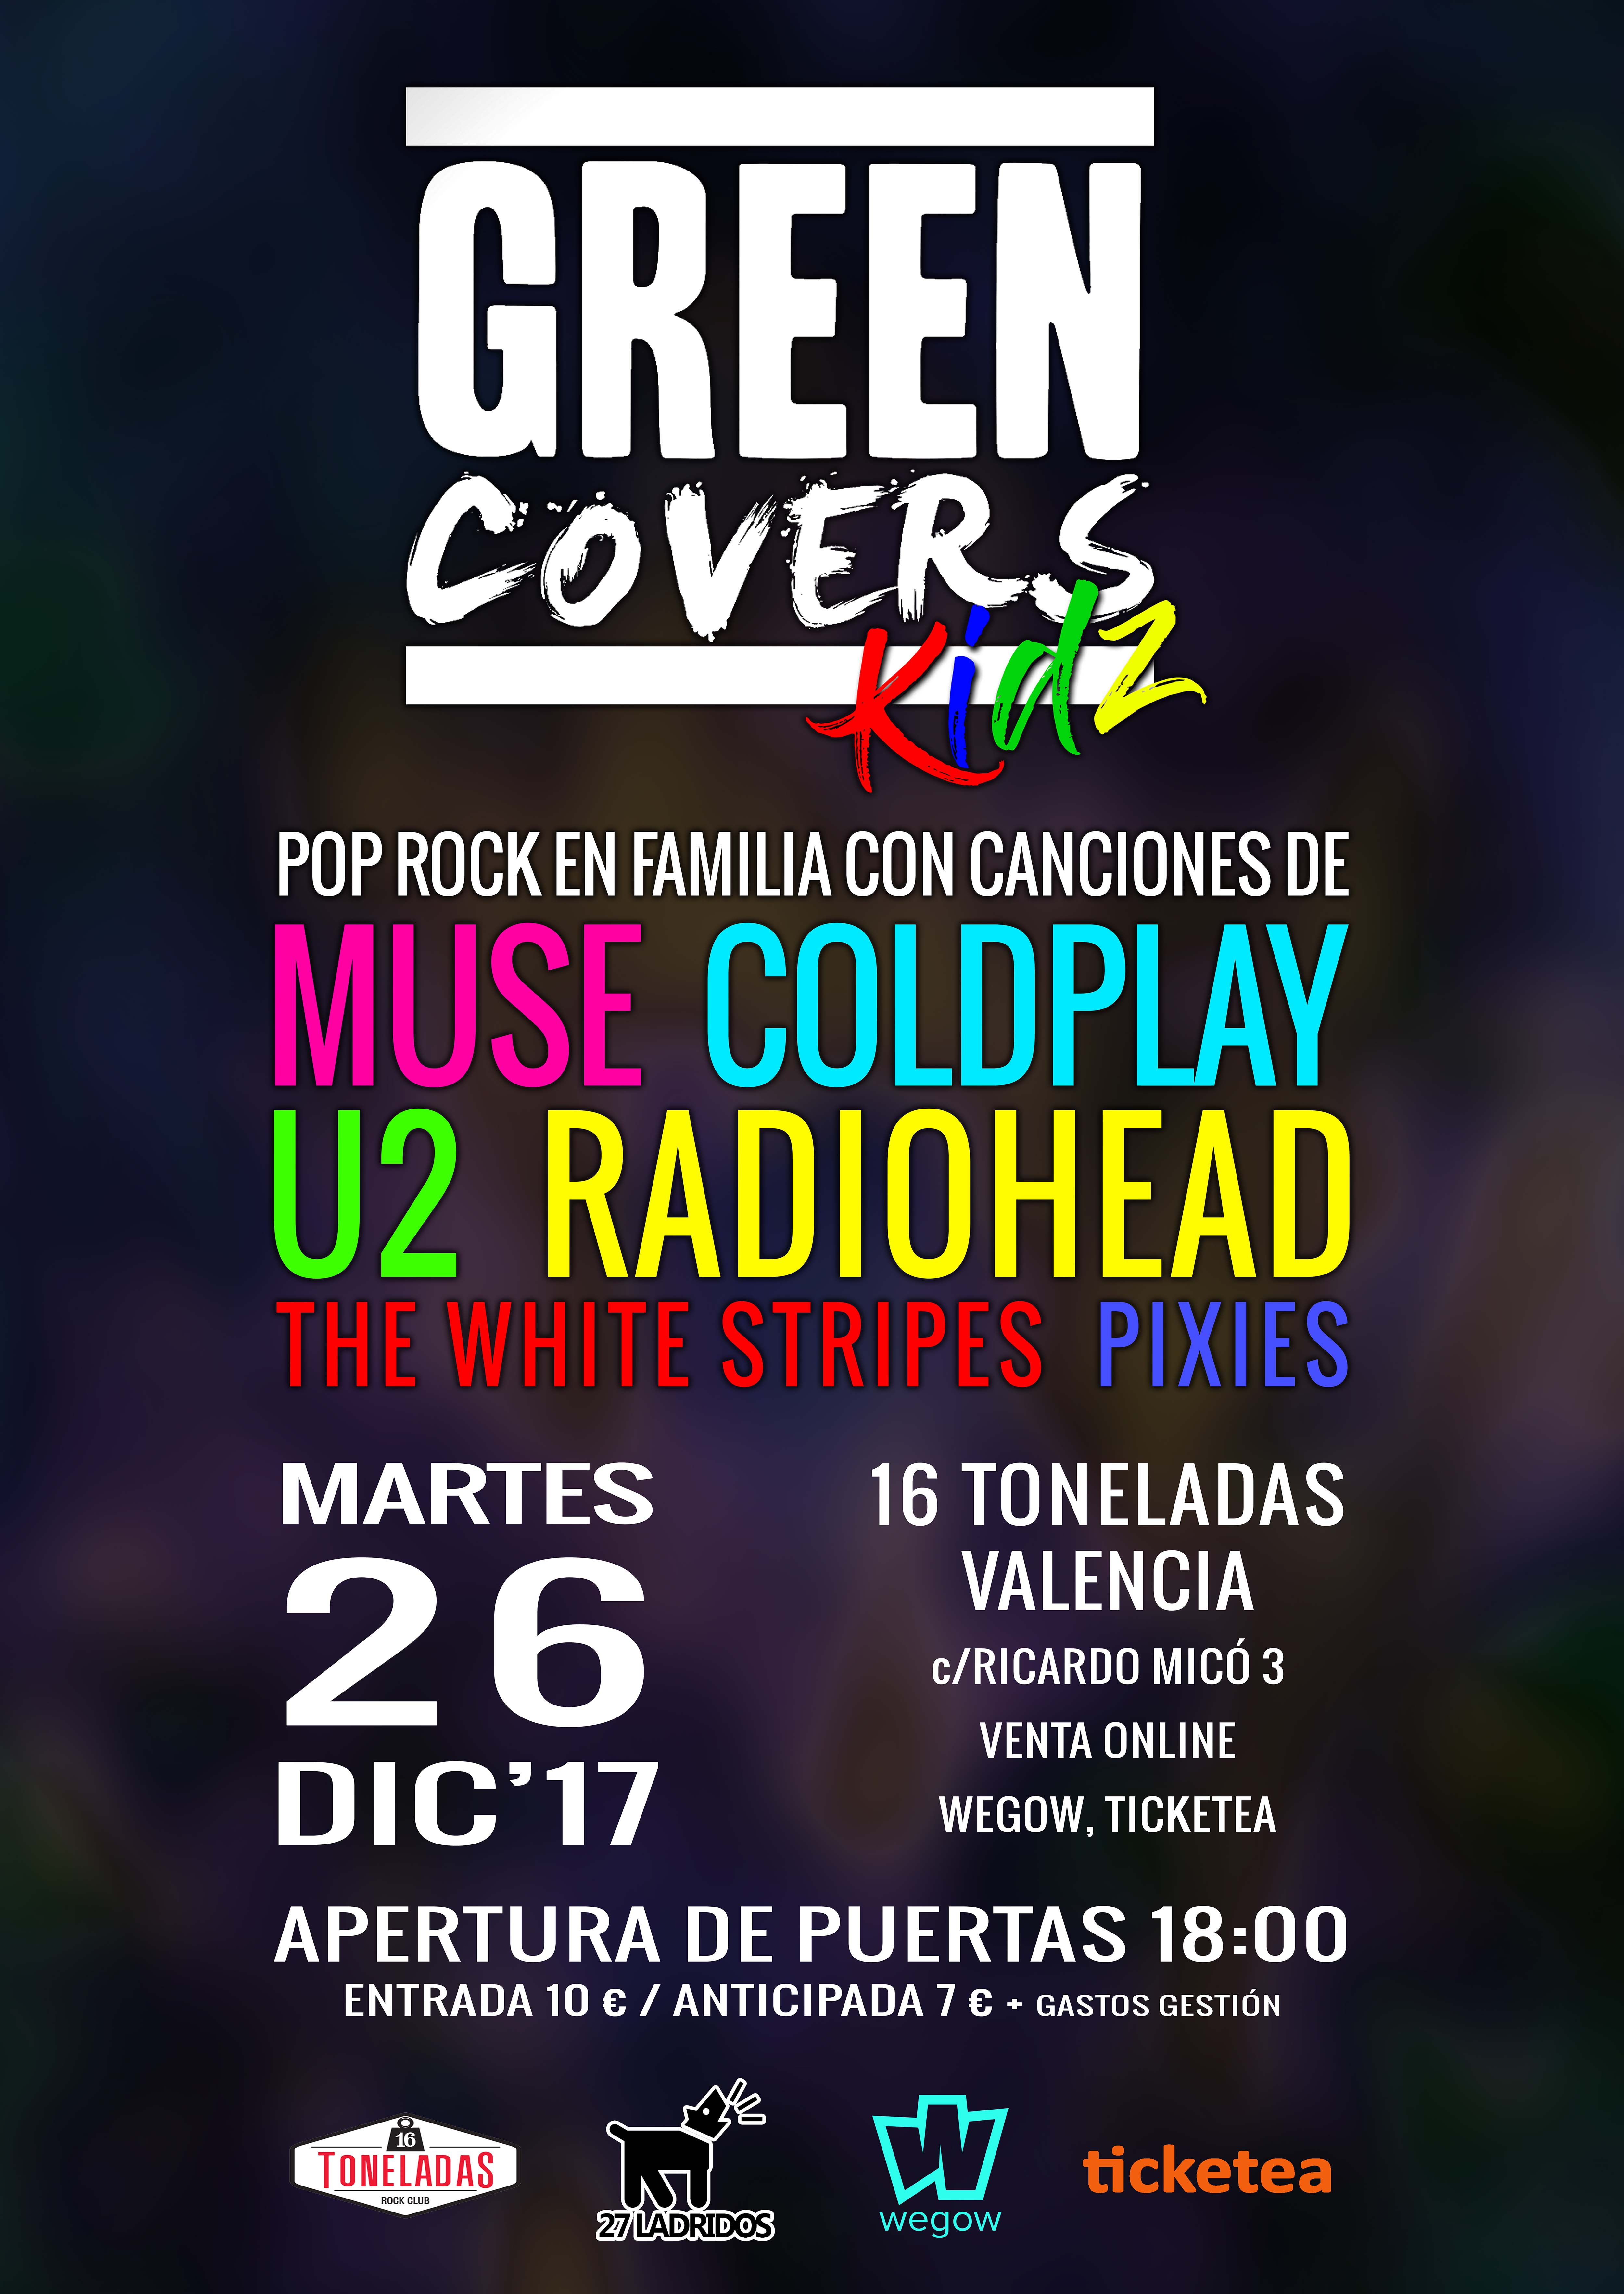 cartel-green-covers-kids-valencia2